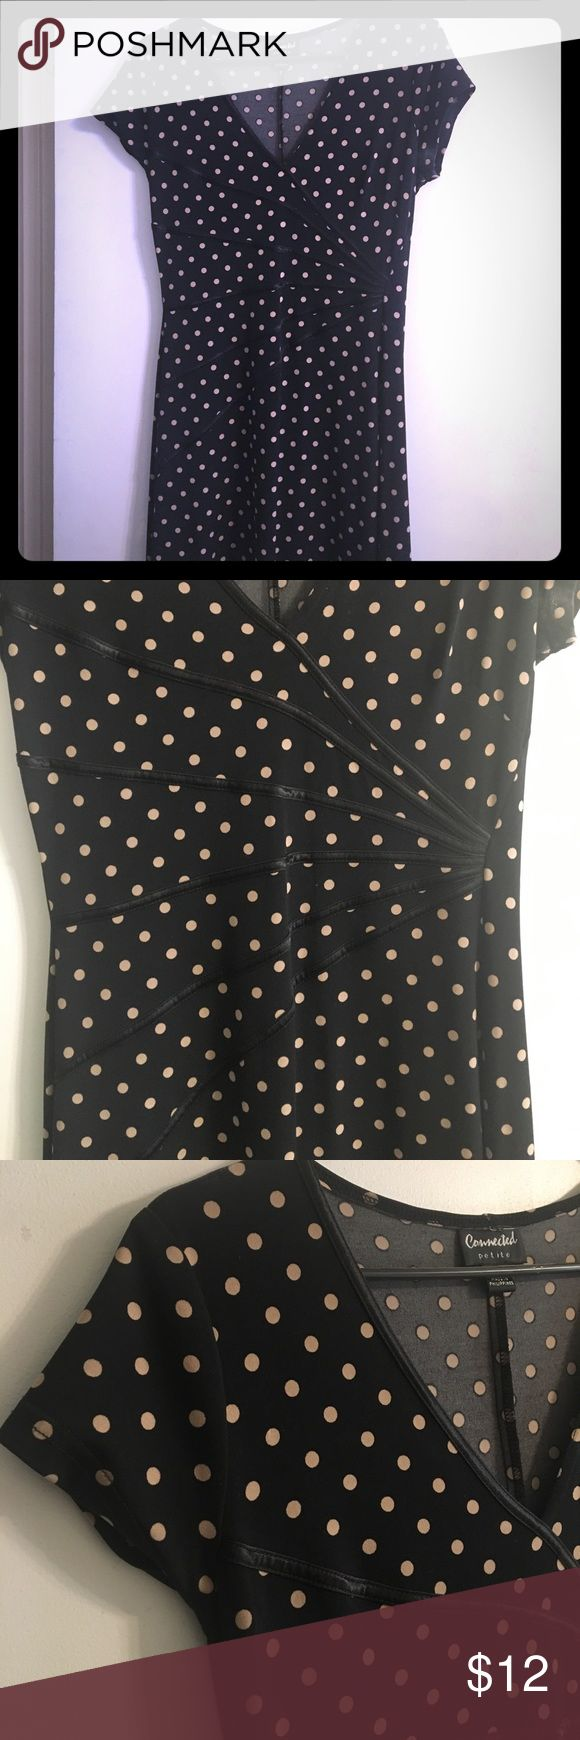 Dress Great fitting polka dot dress with satin accents that look amazing. Connected Petite Dresses Midi